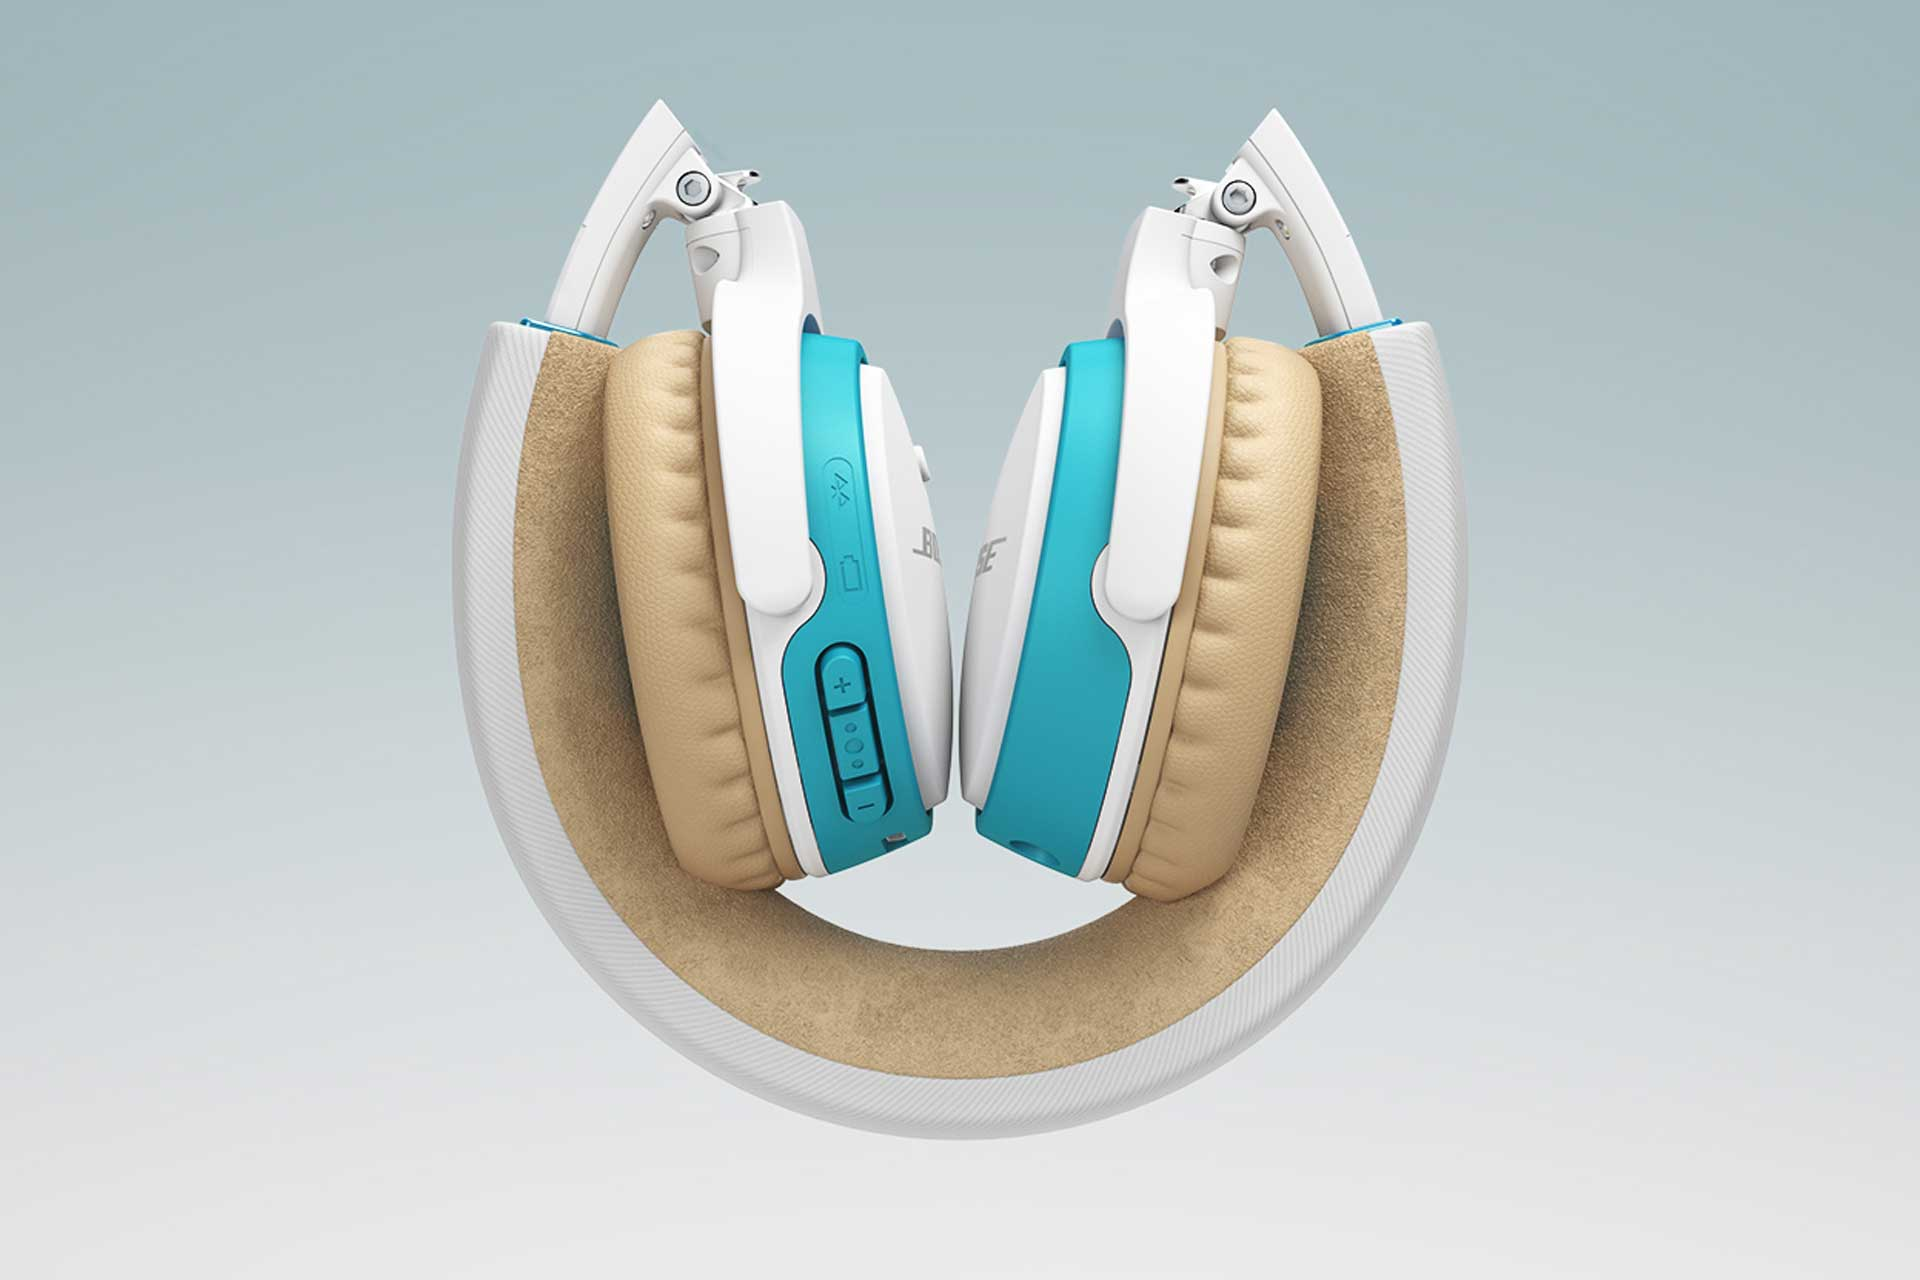 Close view of folded blue, white, and tan BOSE wireless headphones